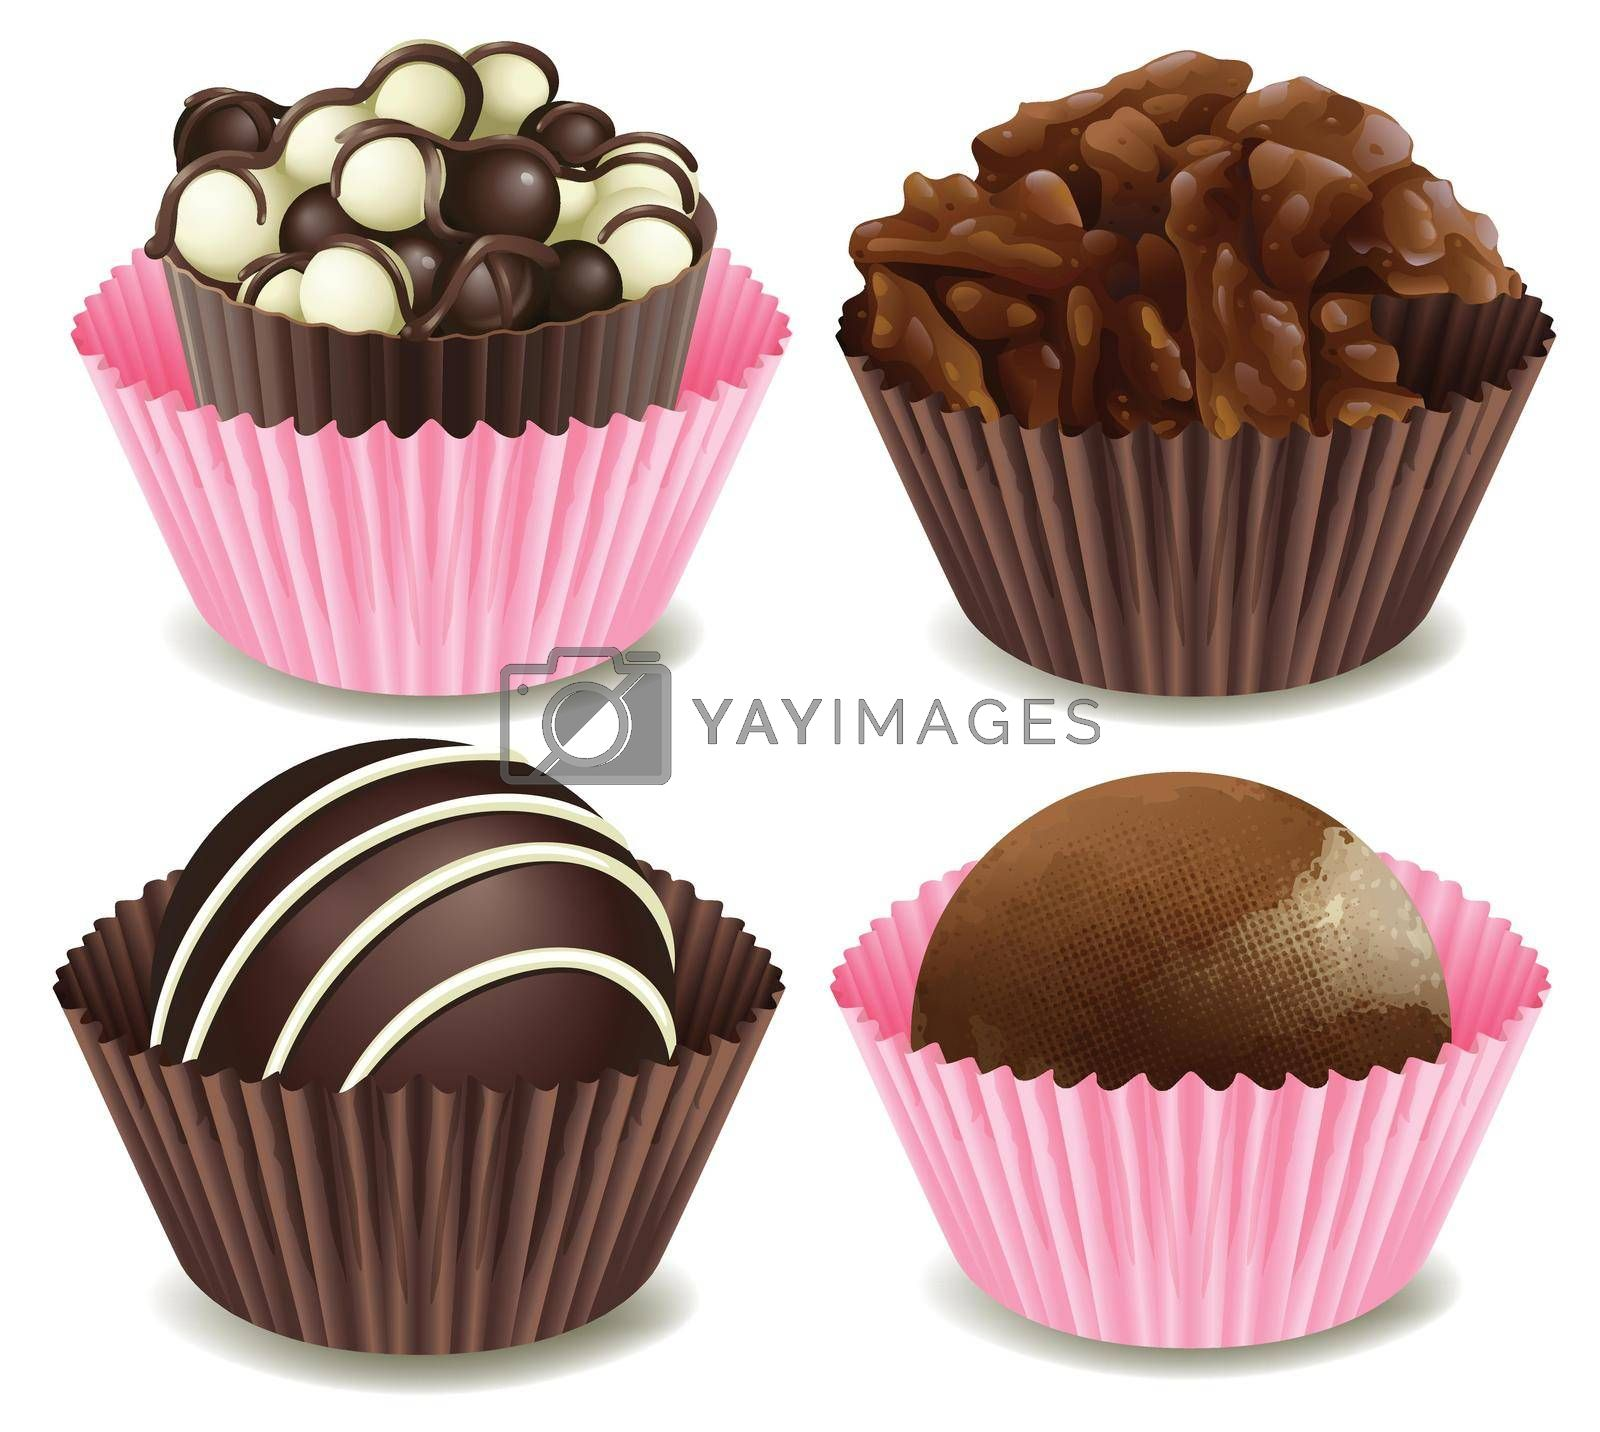 illustration of chocolates in a pink and brown cup on a white background